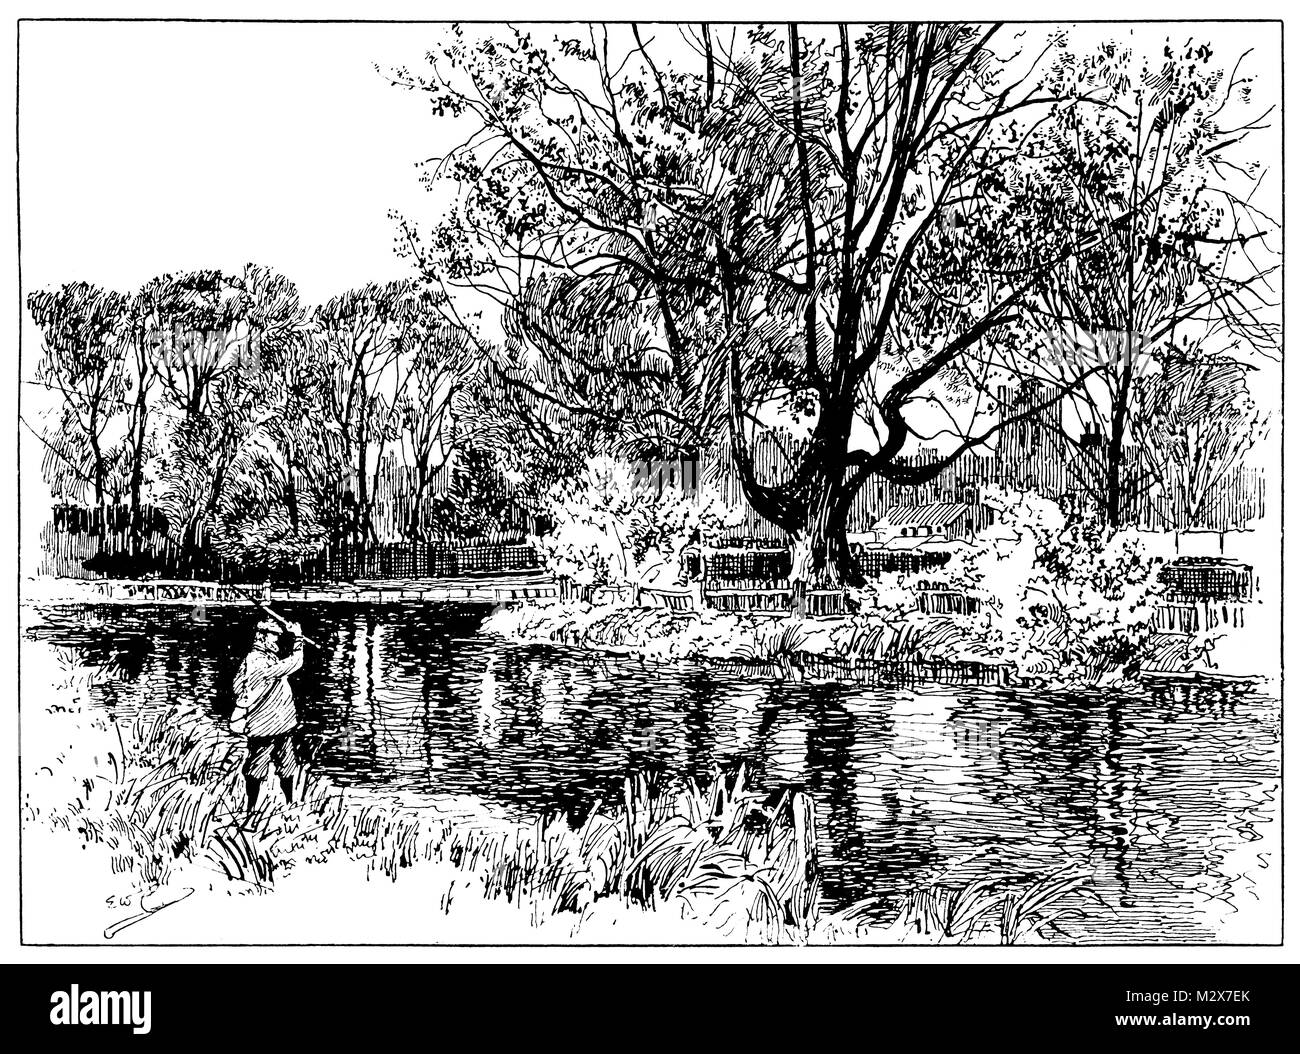 Ill678Ringwood, line illustration by Edward William Charlton from 1895 The Studio an Illustrated Magazine of Fine - Stock Image